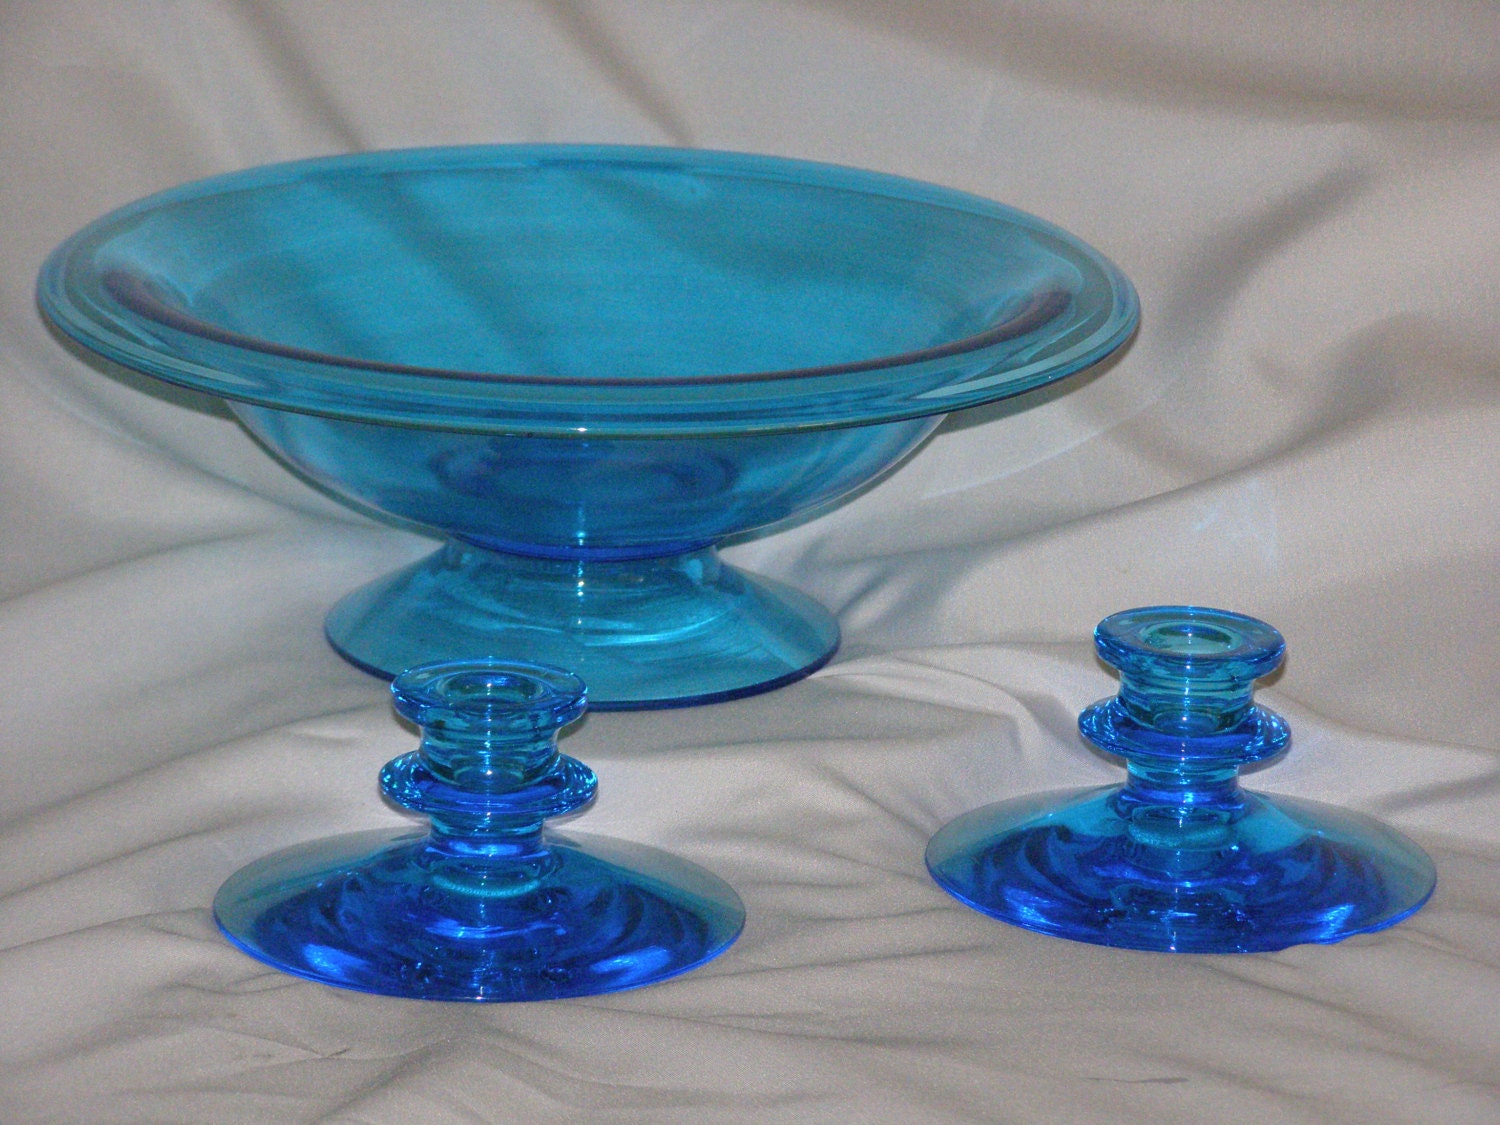 Vintage fostoria blue glass candle holders centerpiece bowl